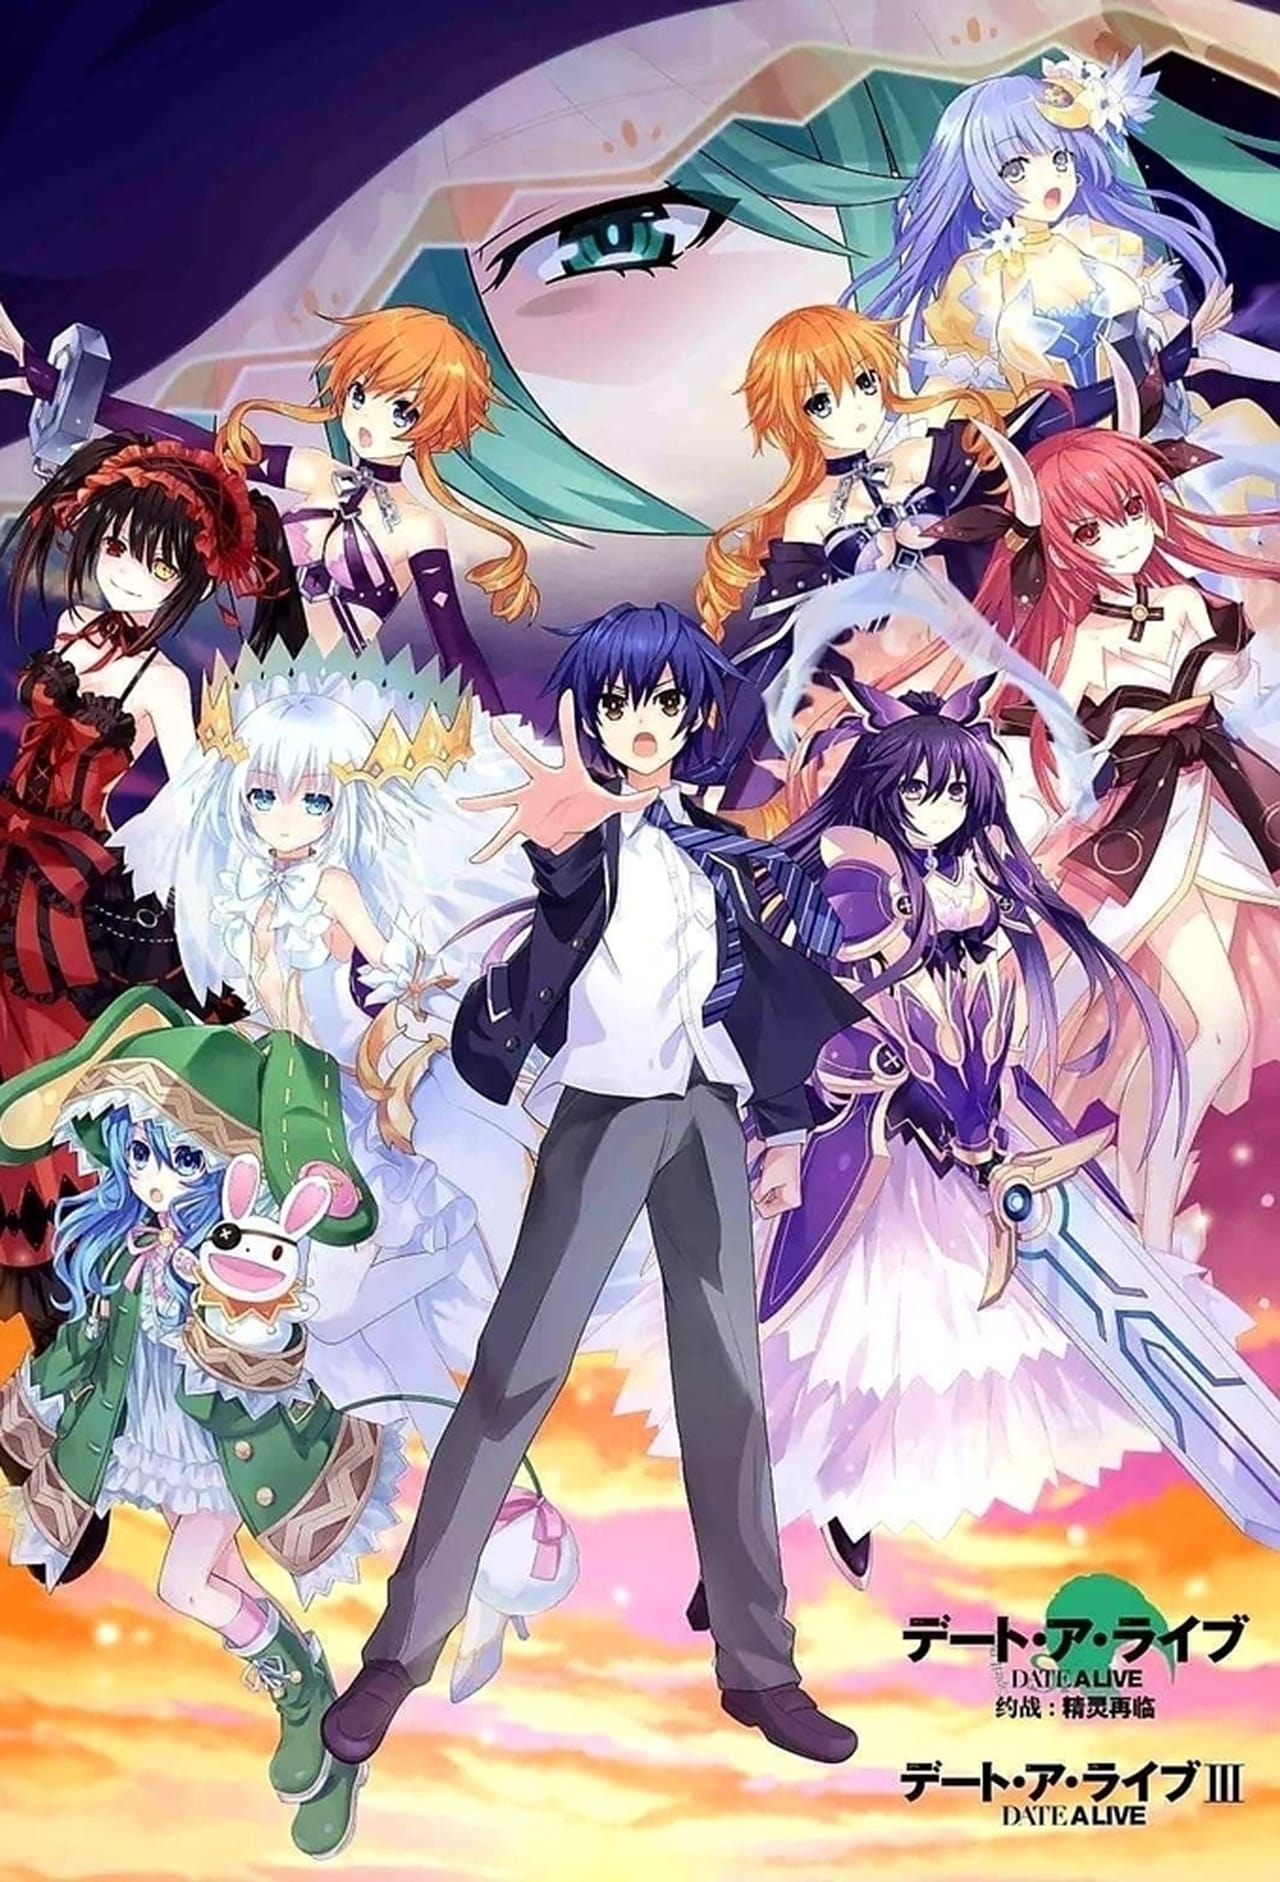 Anime/Date A Live Youtube Channel Cover - ID: 101969